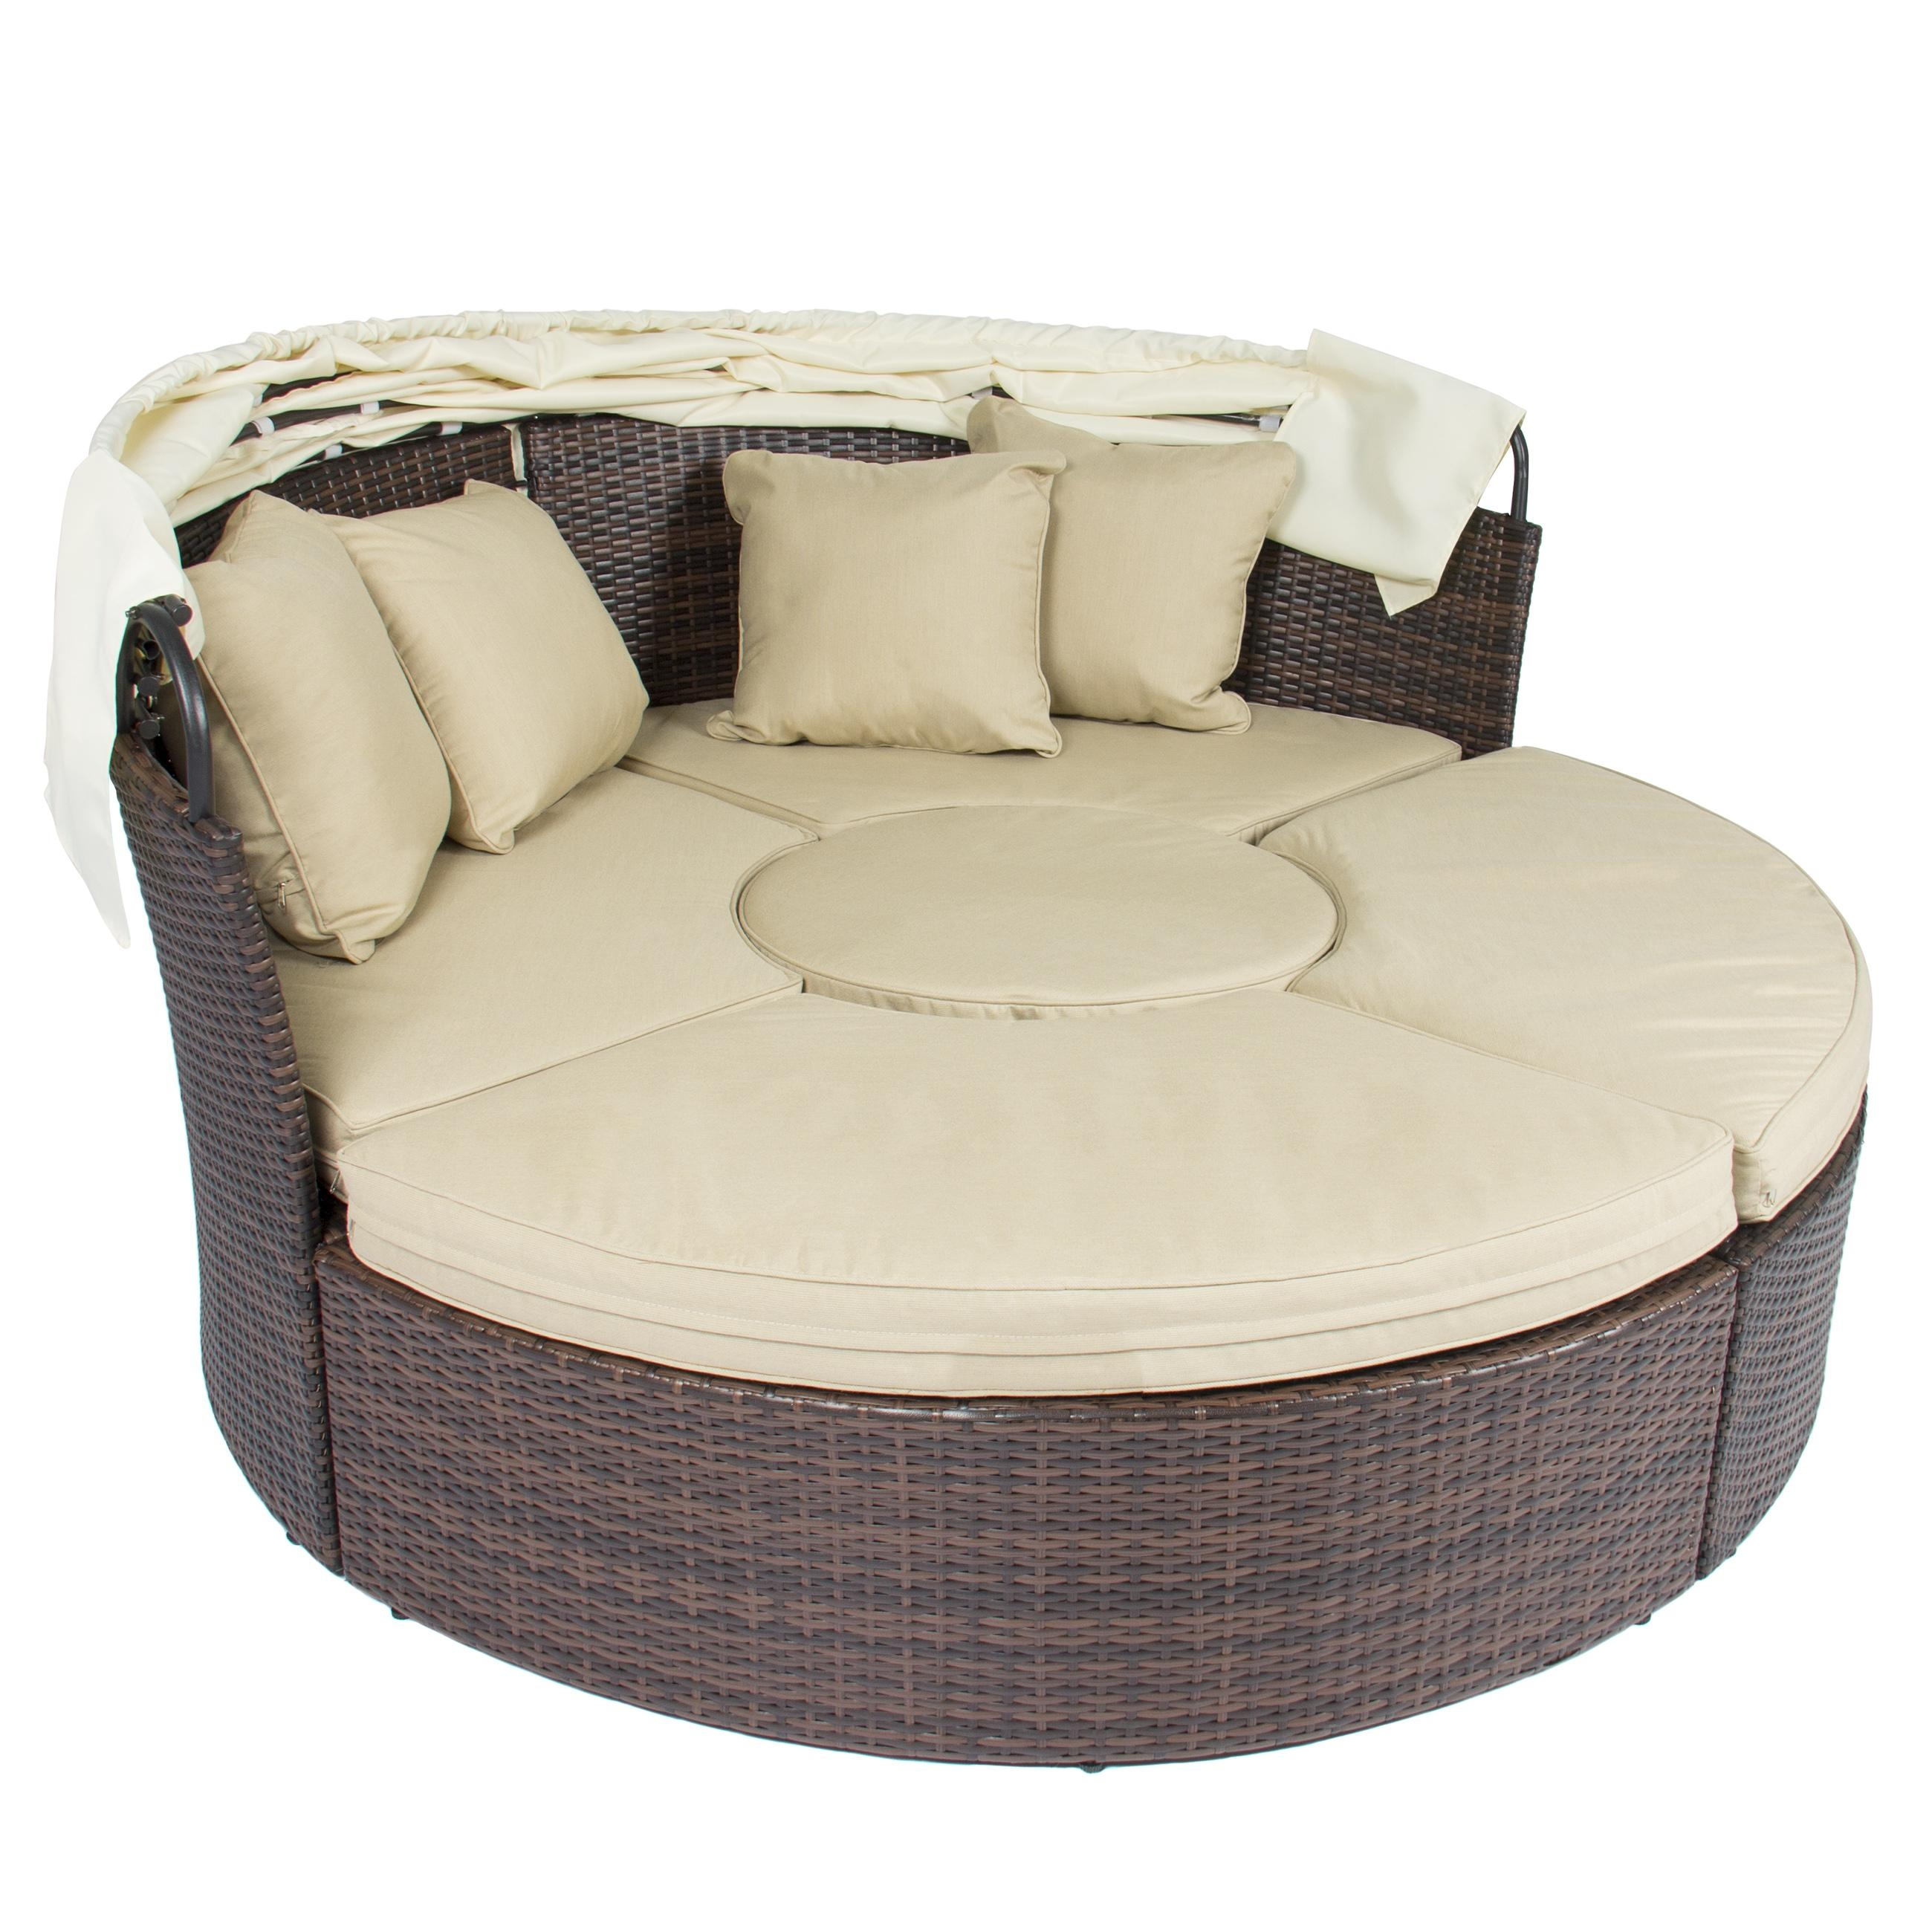 Sofas Center : Round Sofa Chair For Saleshley Furniture Big Large For Round Sofa Chair (View 6 of 20)